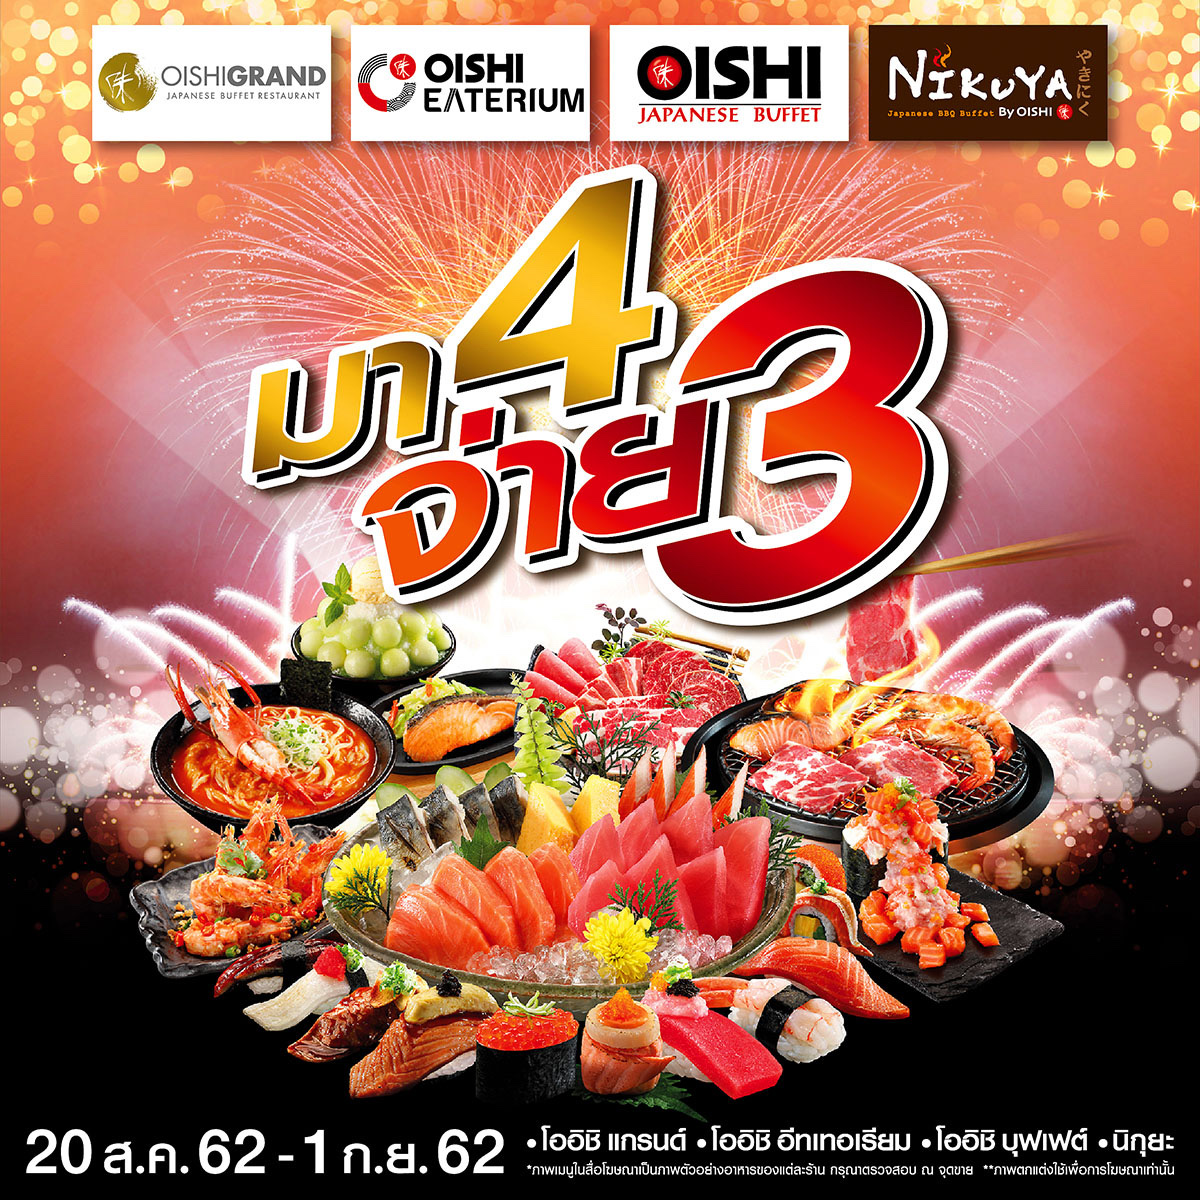 Promotion Oishi Buffet, Oishi Eaterium, Shabushi, Nikuya Come 4 pay 3 Aug 2019